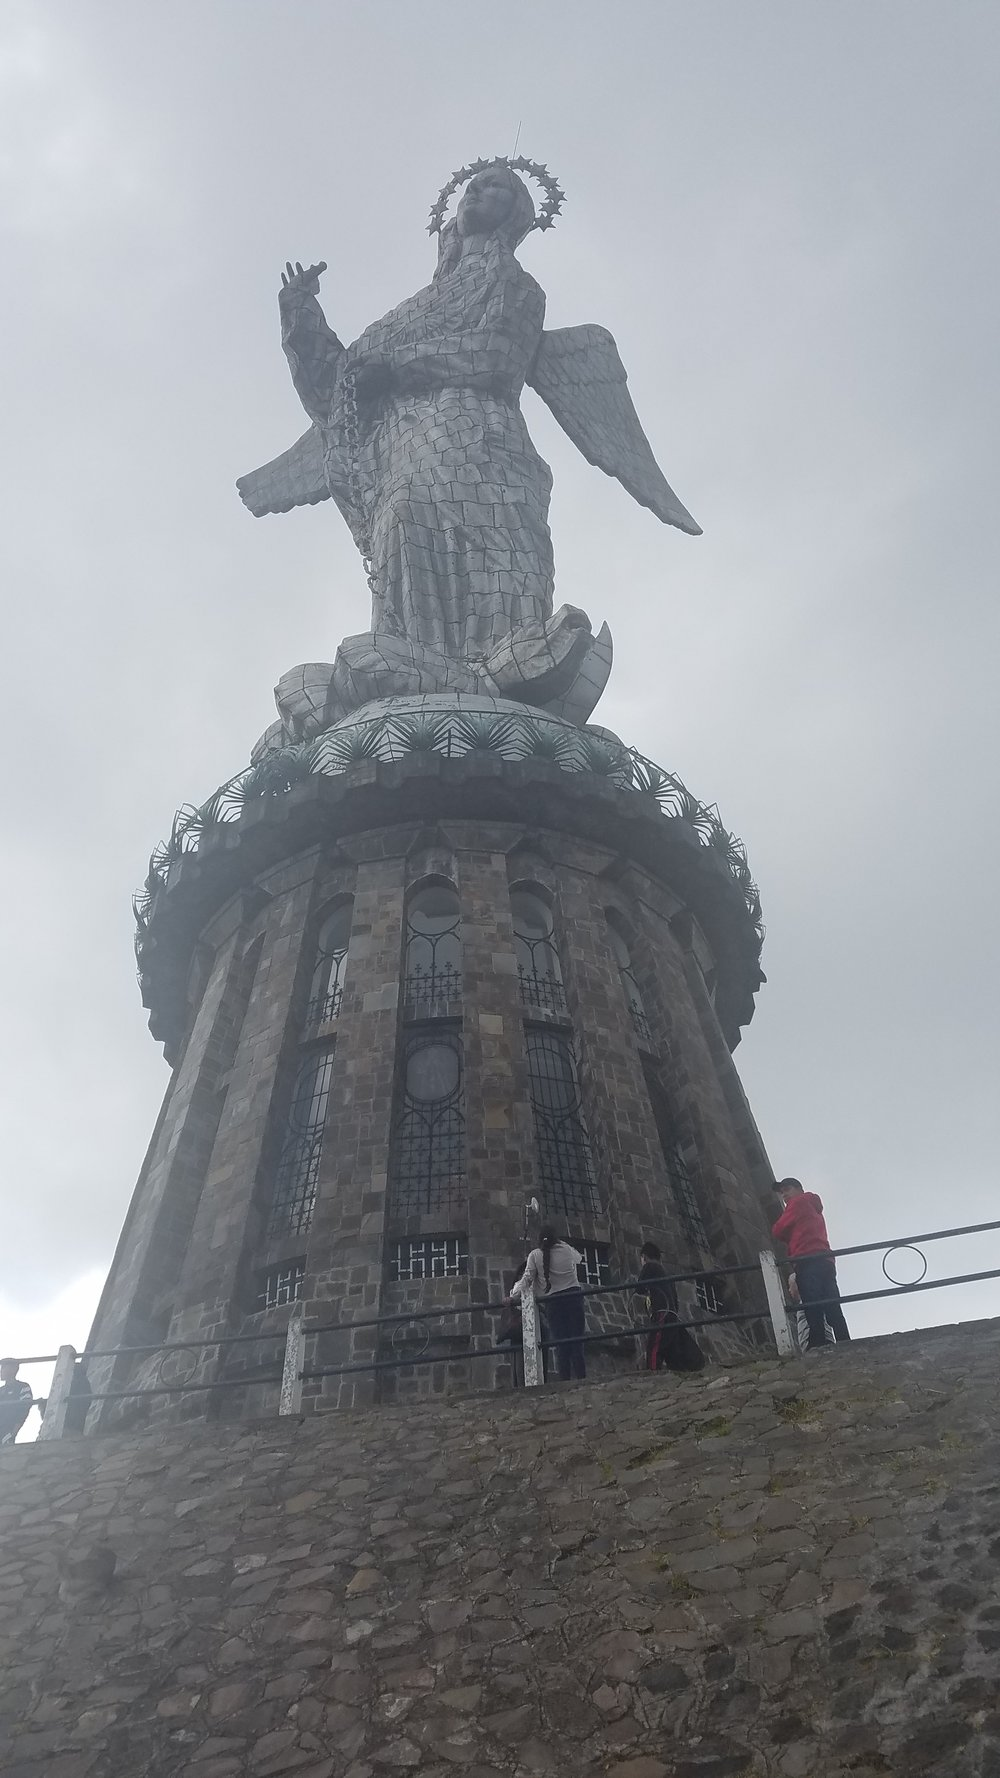 The Virgen del Panecillo stands watch over Quito, Ecuador.